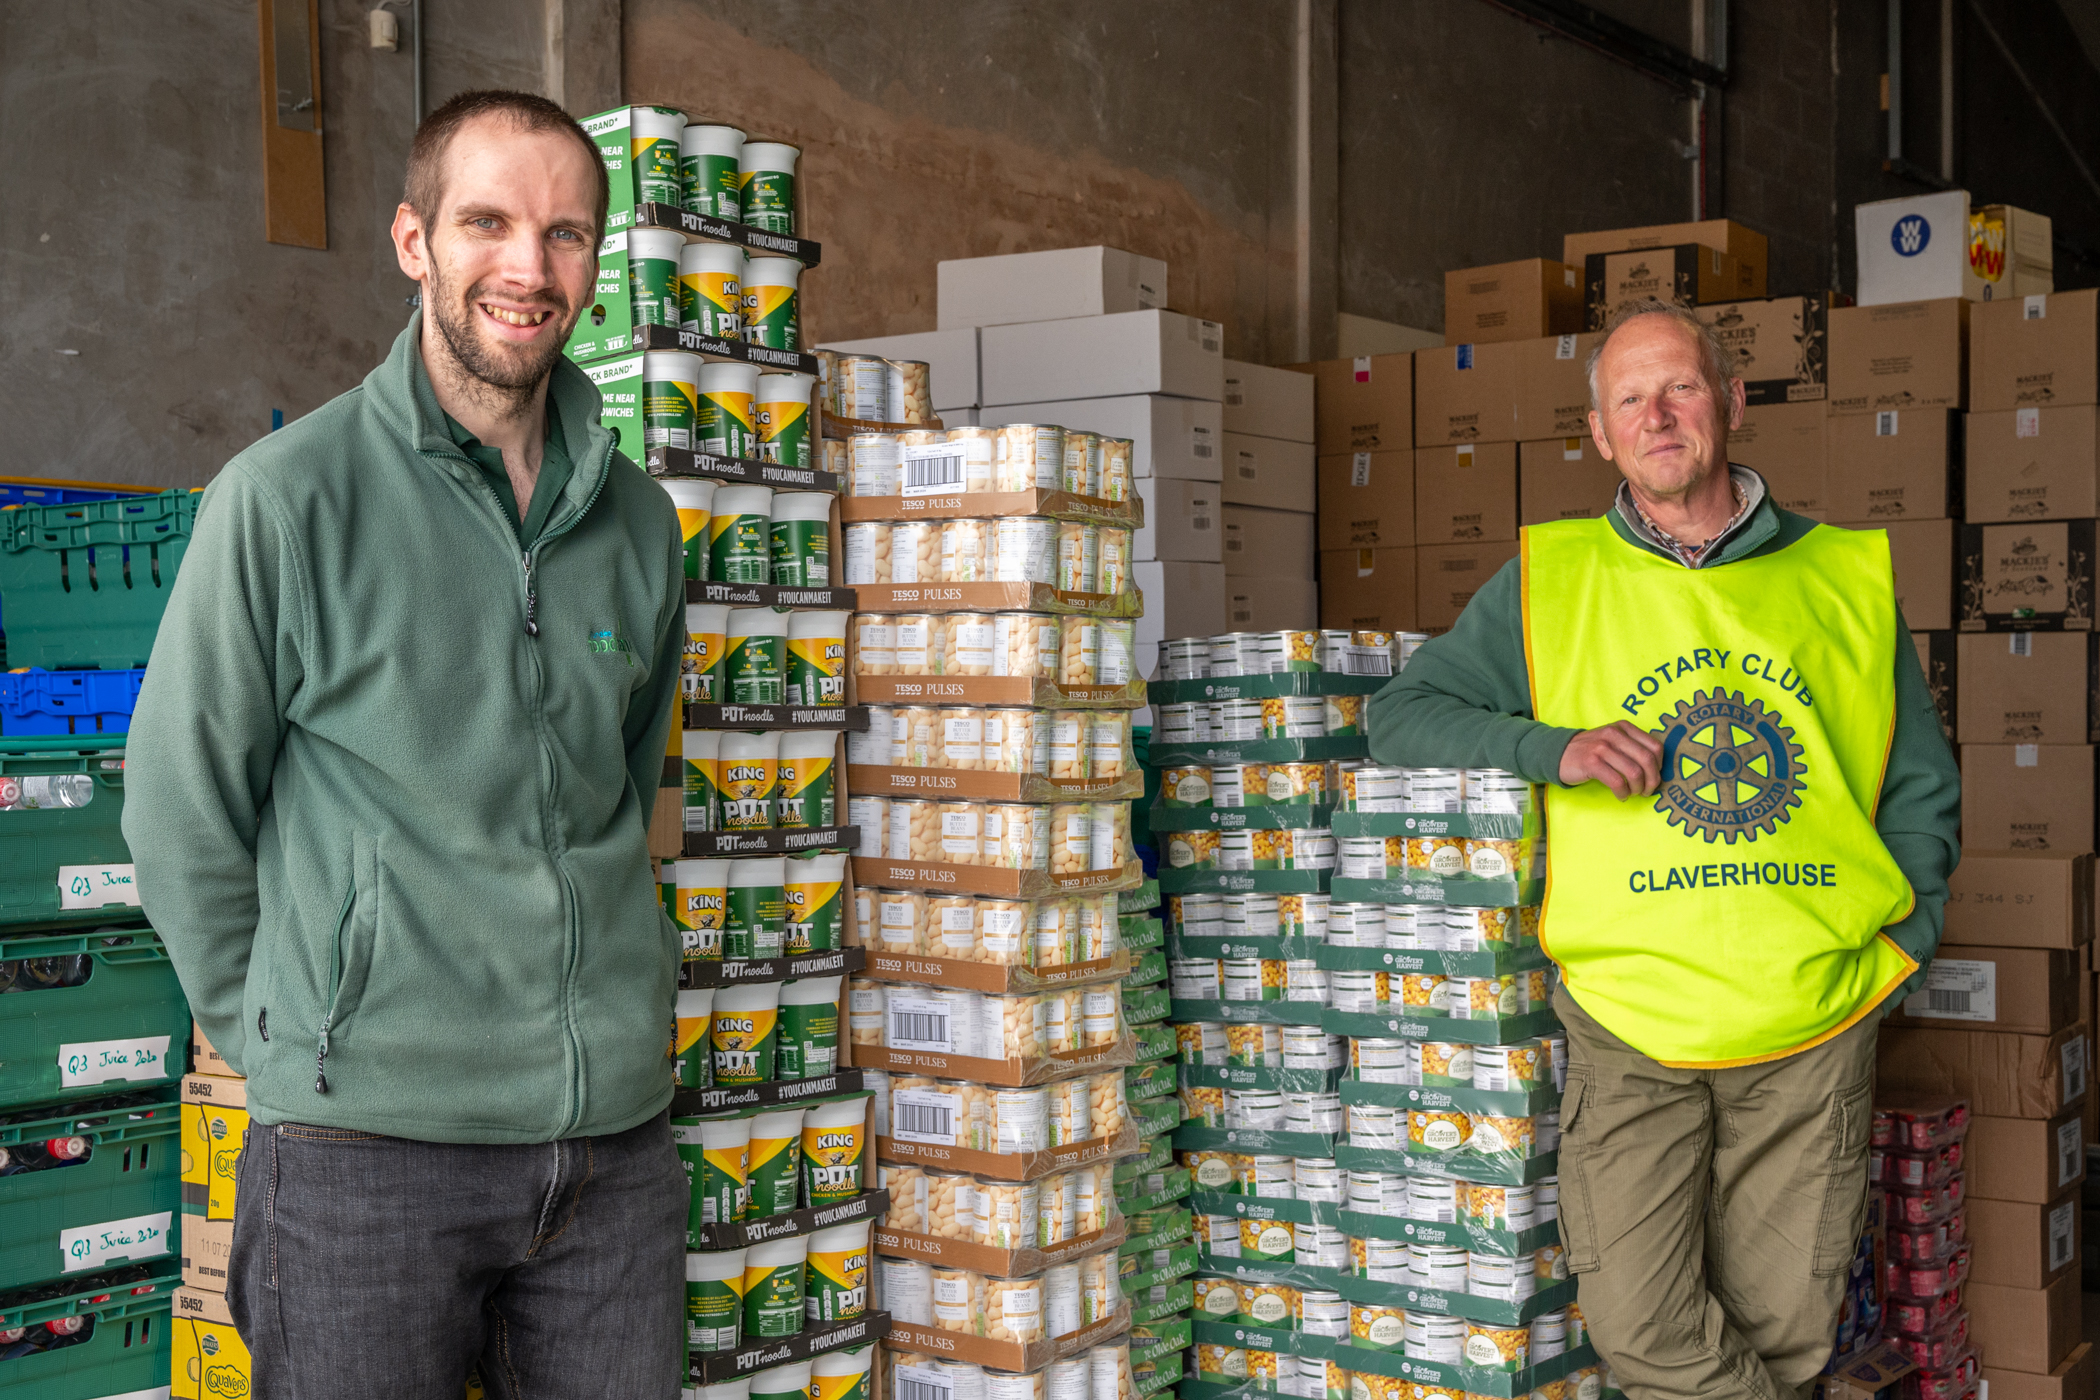 Michael Calder, warehouse manager at Dundee Foodbank, with Nick White, a Claverhouse Rotarian and food bank volunteer